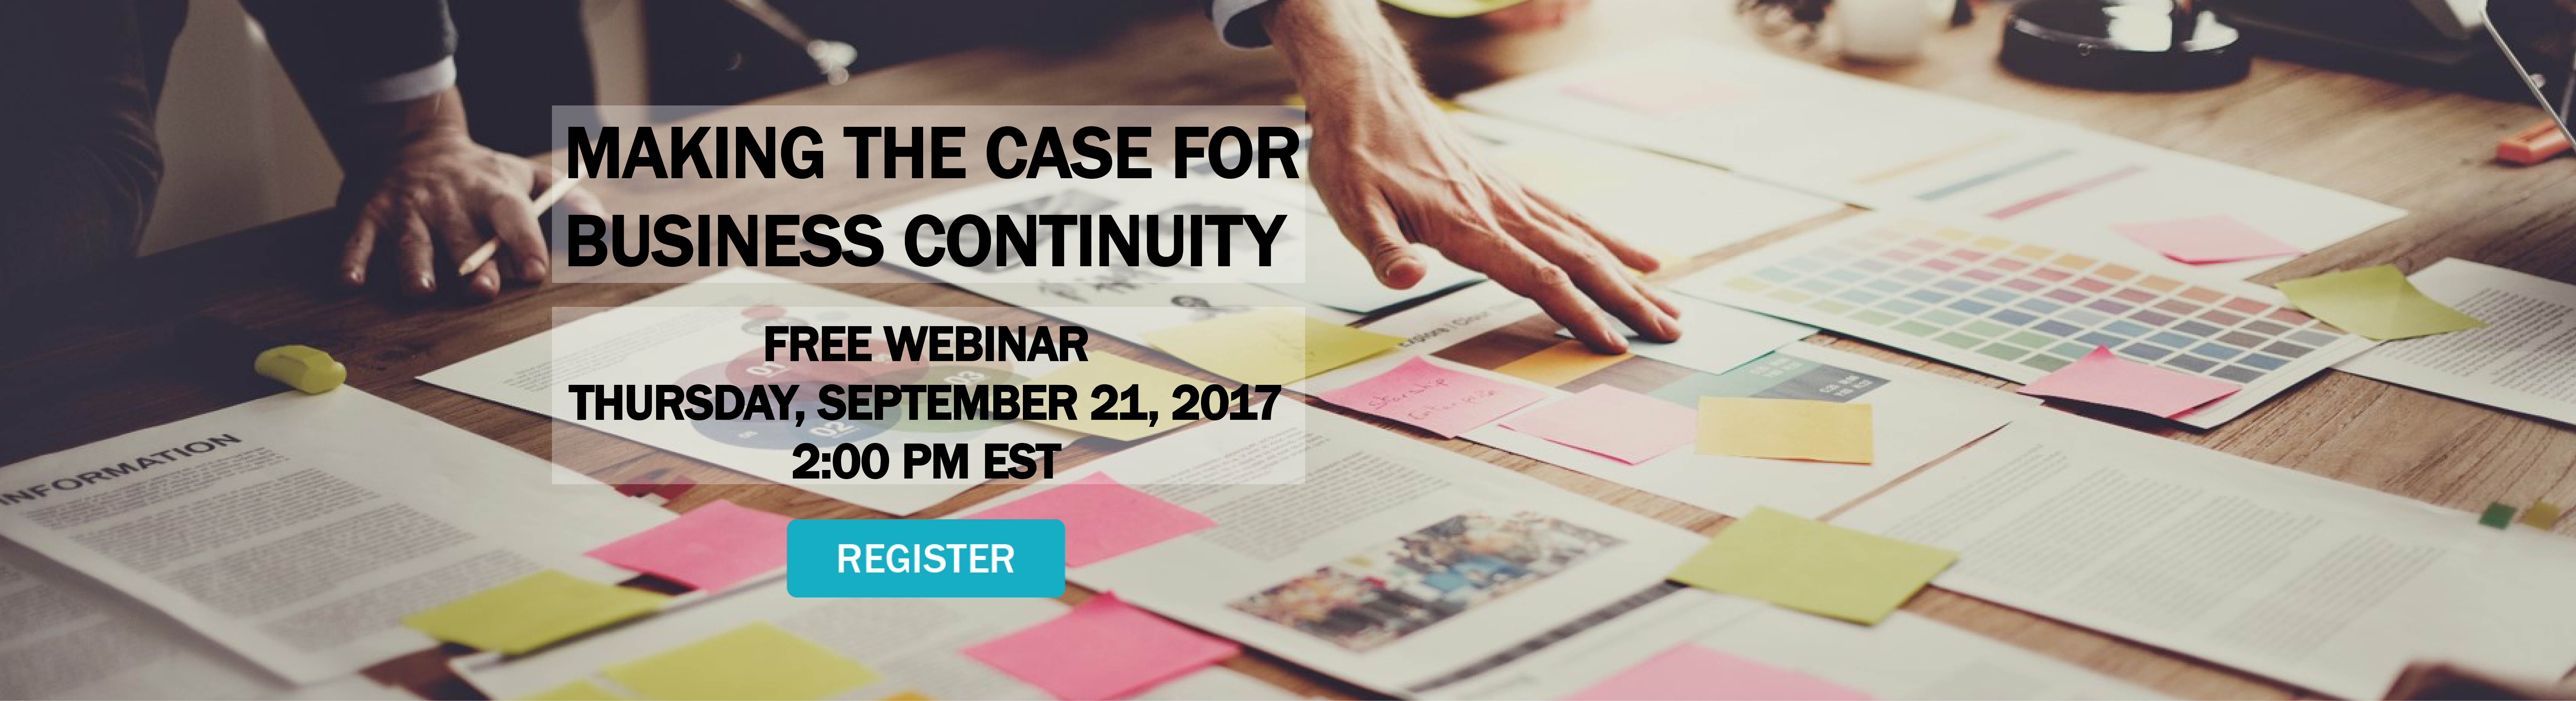 Making-the-Case-for-Business-Continuity-Webinar-Hero-Image-1